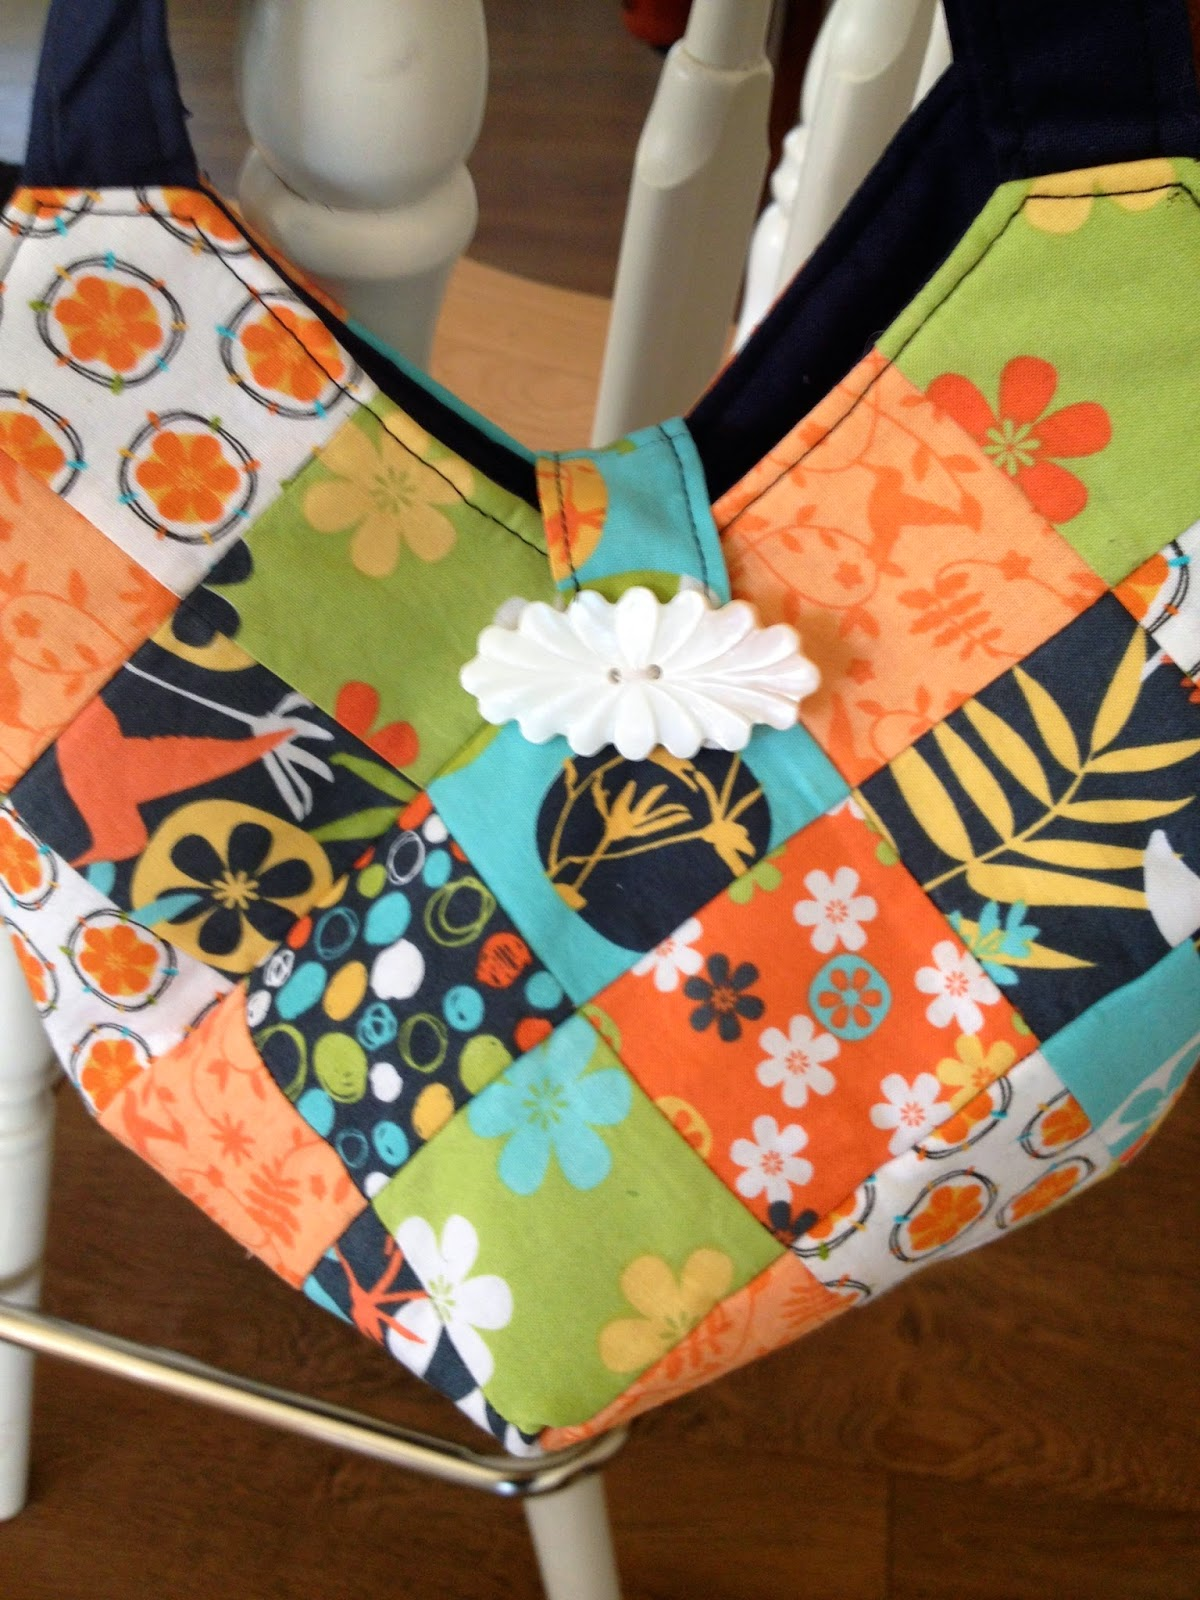 button closure on a Quiltsmart Bitty Bag